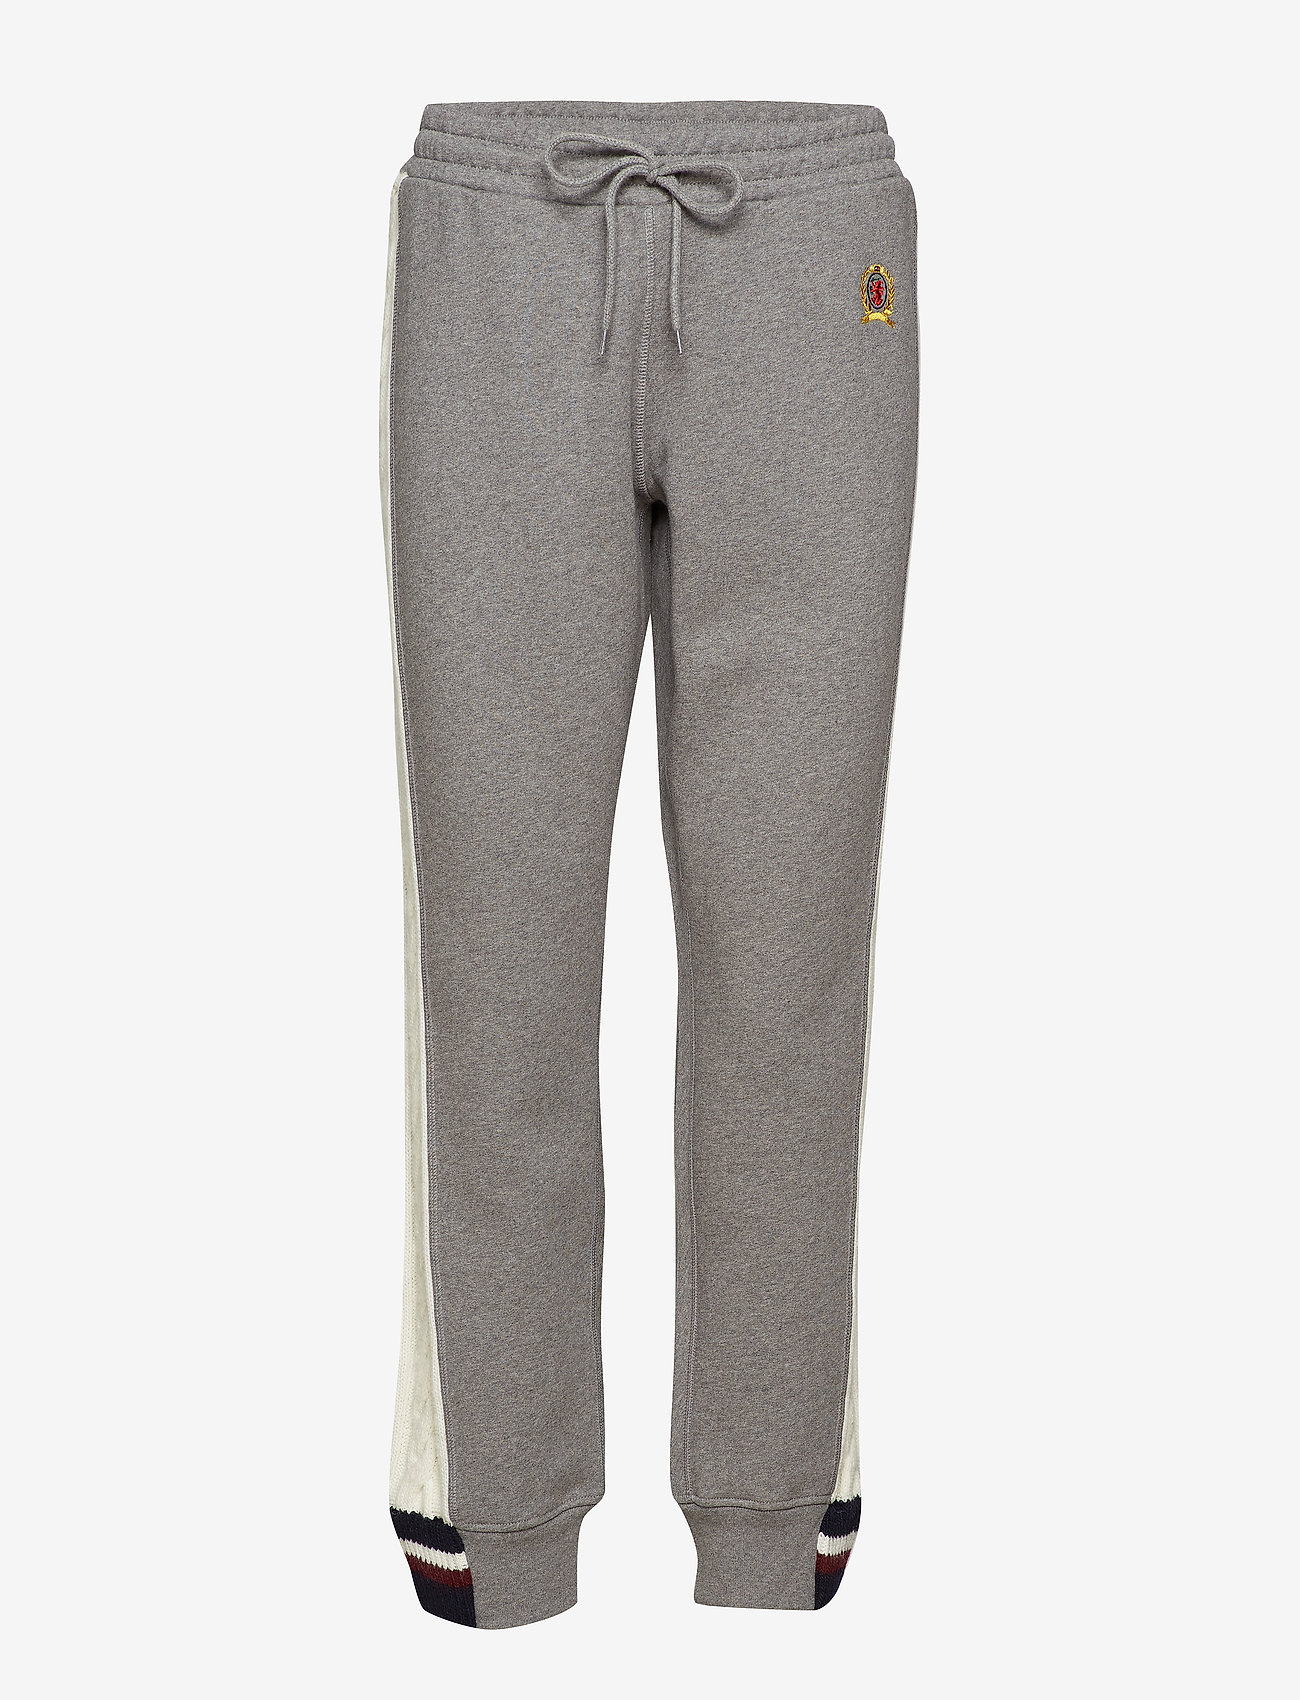 Hilfiger Collection - CABLE KNIT STRIPE TRACK PANT - sweatpants - grey marl / multi - 0